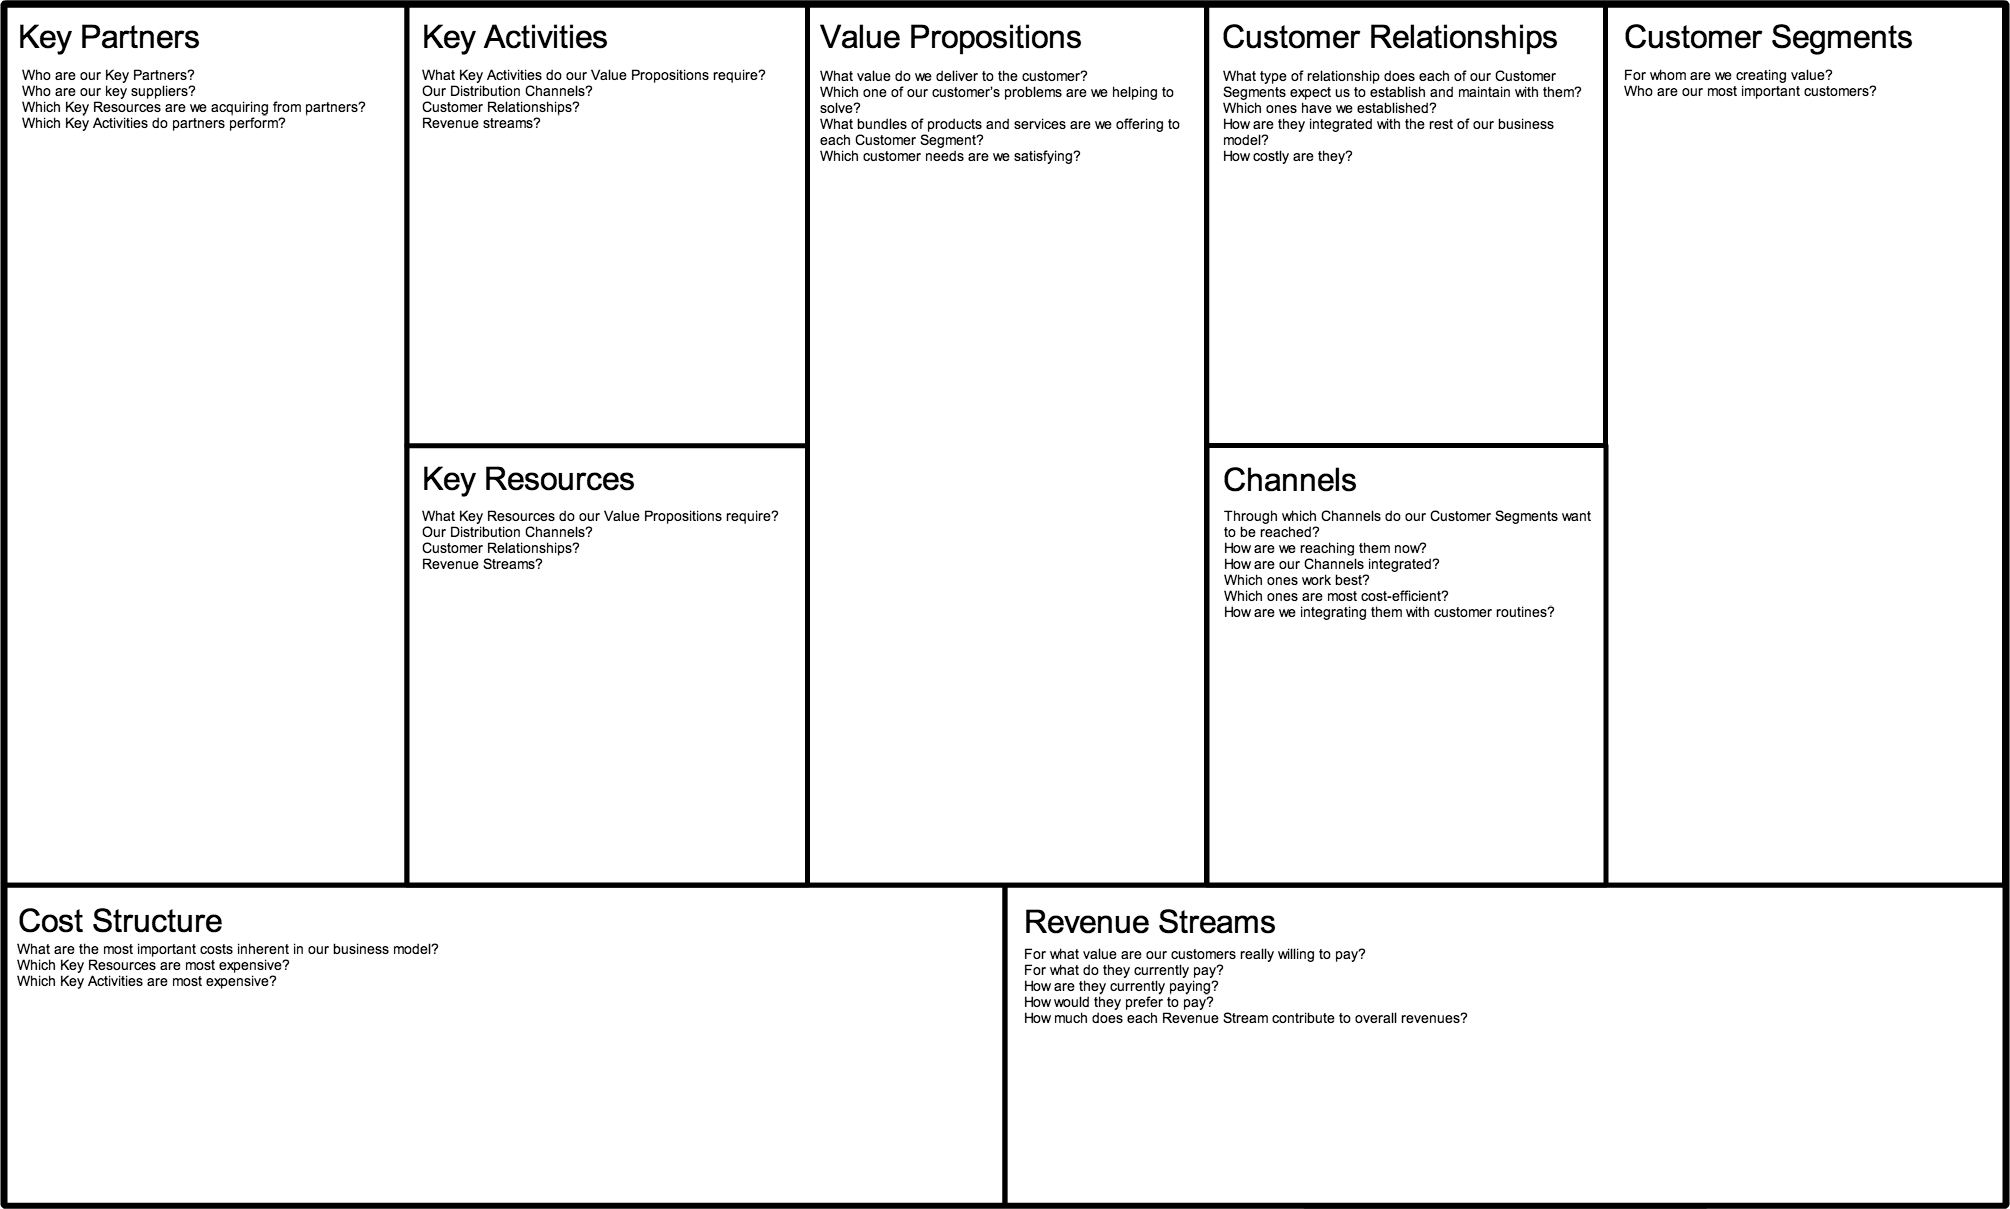 Business model canvas pdf google search business in 2018 business model canvas pdf google search business model canvas templates business marketing accmission Gallery